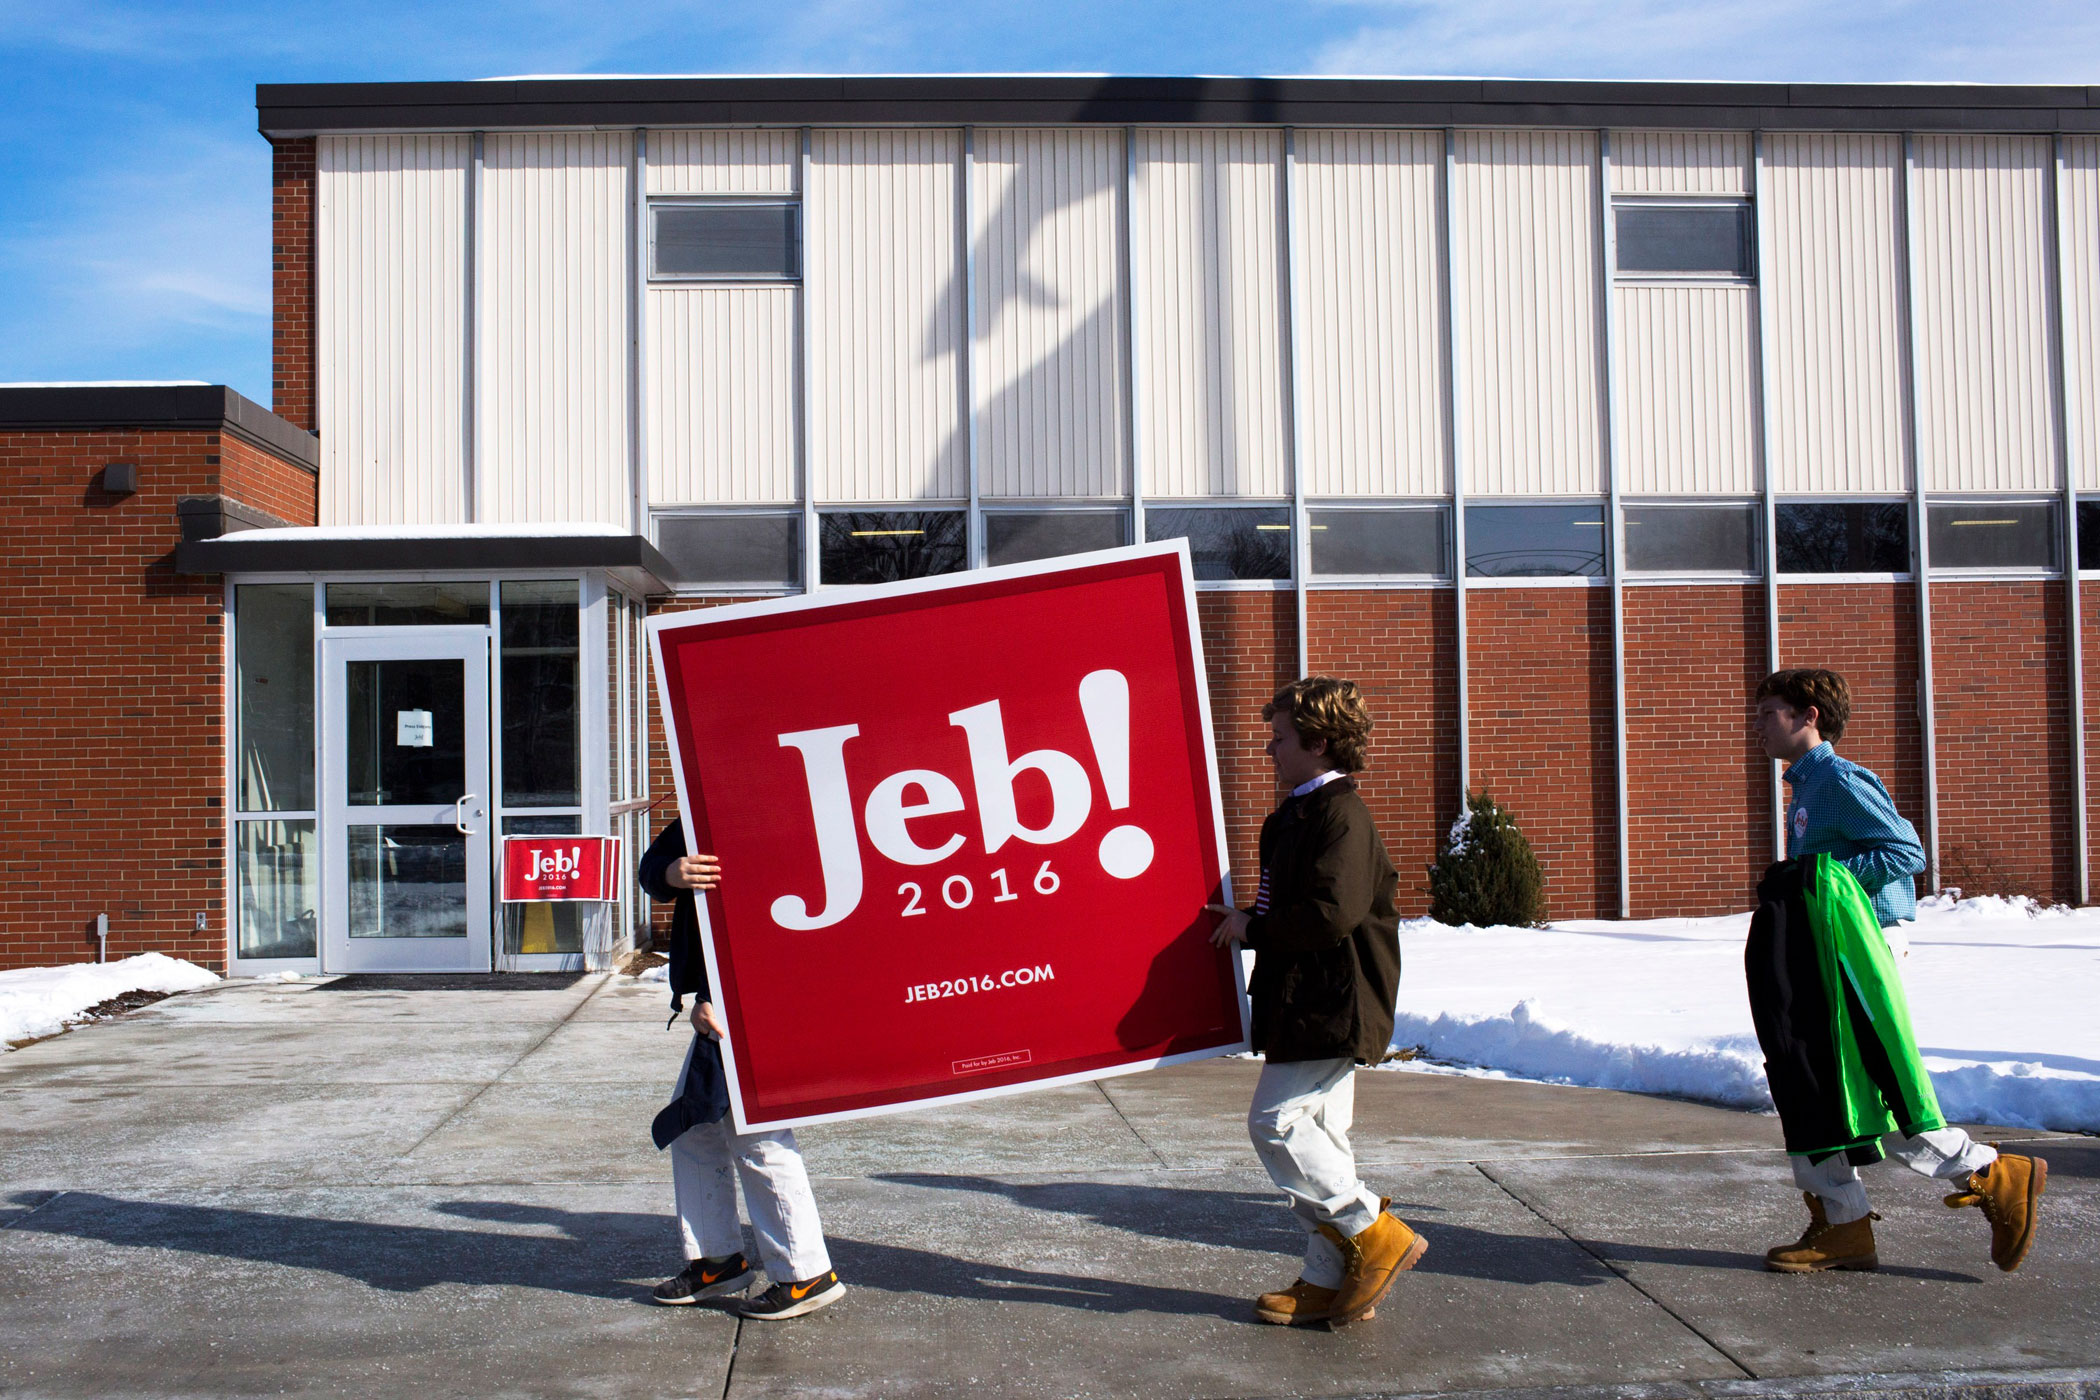 Supporters of former Florida governor Jeb Bush attend a town-hall event at the McKelvie Intermediate School in Bedford, N.H., on Feb. 6, 2016.